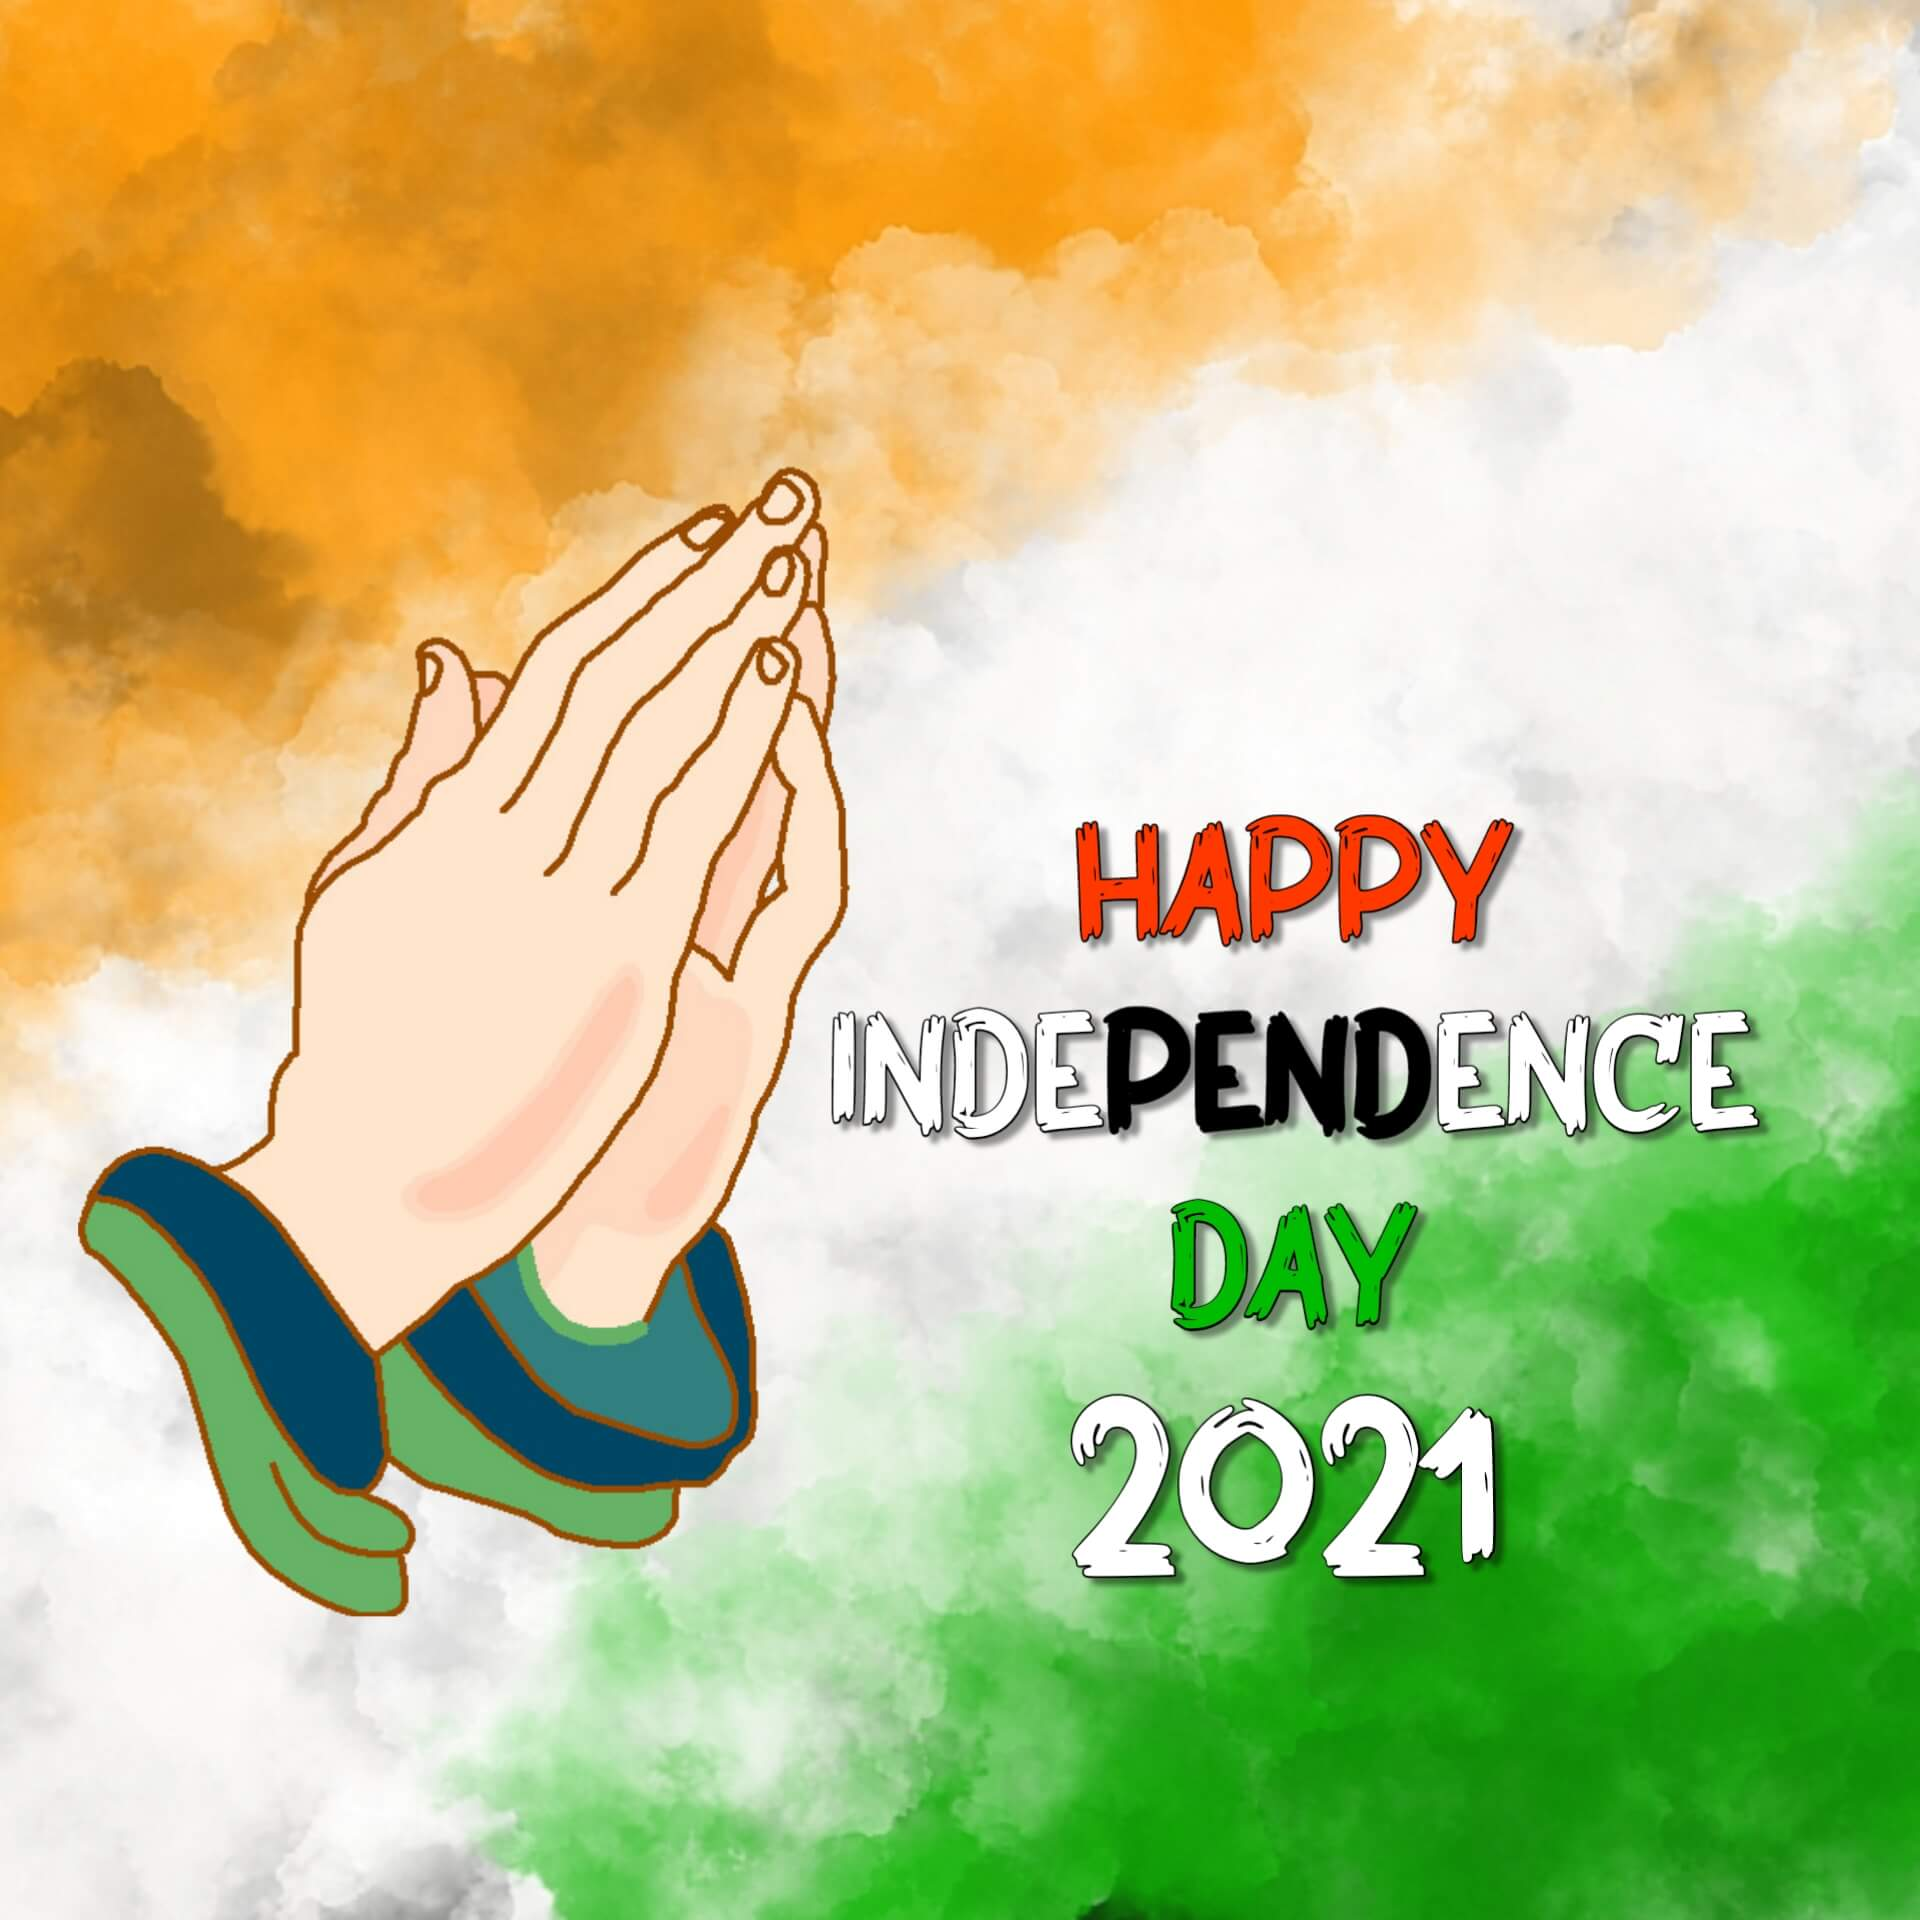 2021 Independence Day